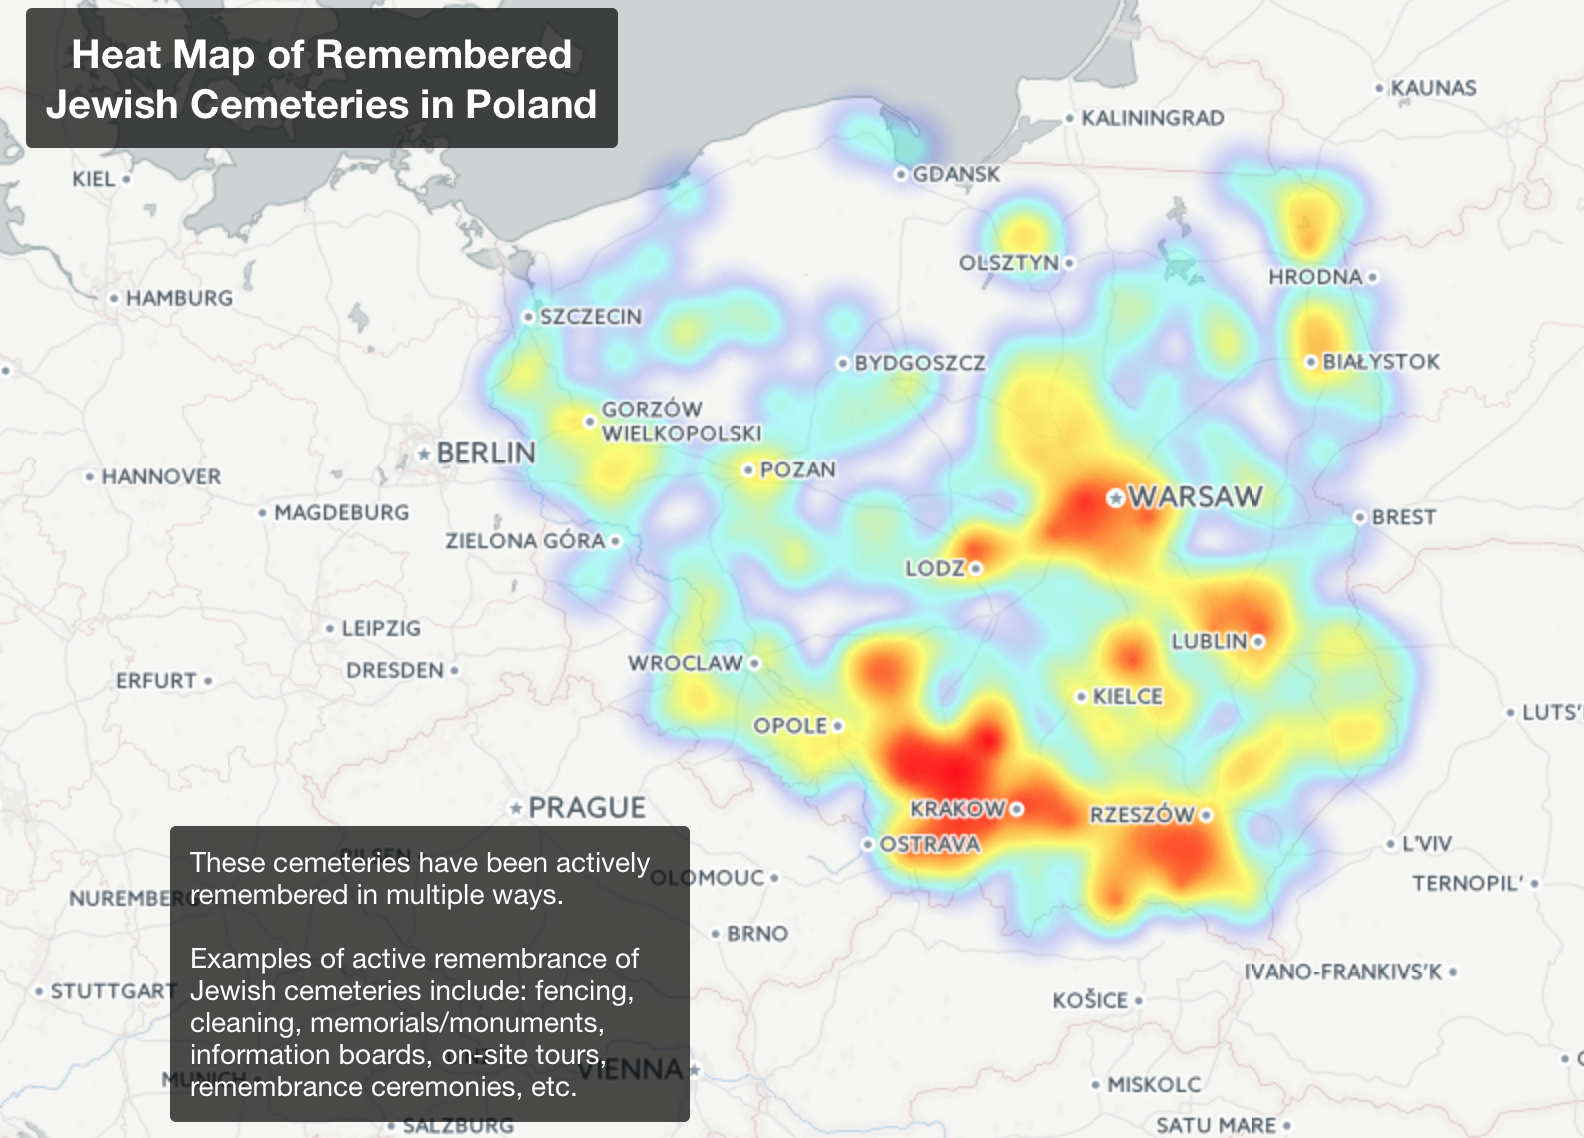 Southern Poland Map.Final Project Mapping The Remembrance Of Jewish Cemeteries In